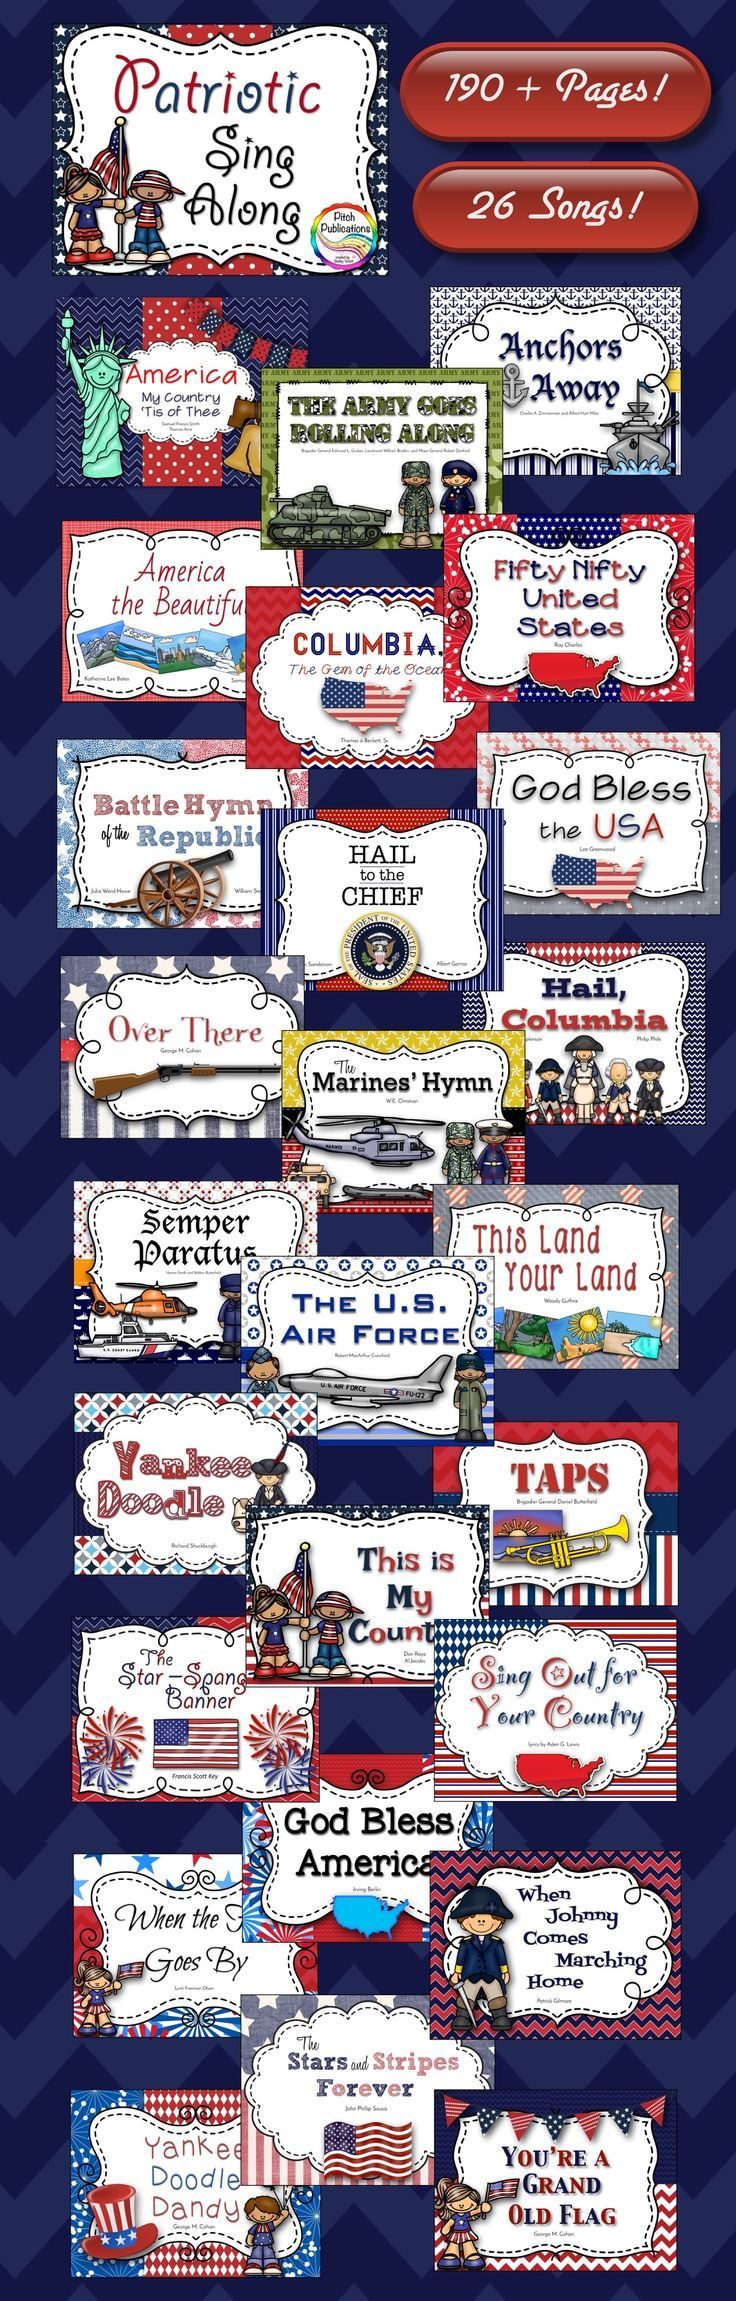 Incorporating history of independence day and music, this pin is a great way to teach about some of the important historical songs about America. As a future teacher, this is great because it teaches students about the history of our country as well as informing them about songs like the Star Spangled Banner. I would use this in my 2nd to 3rd grade classroom to explain the importance of Independence day.